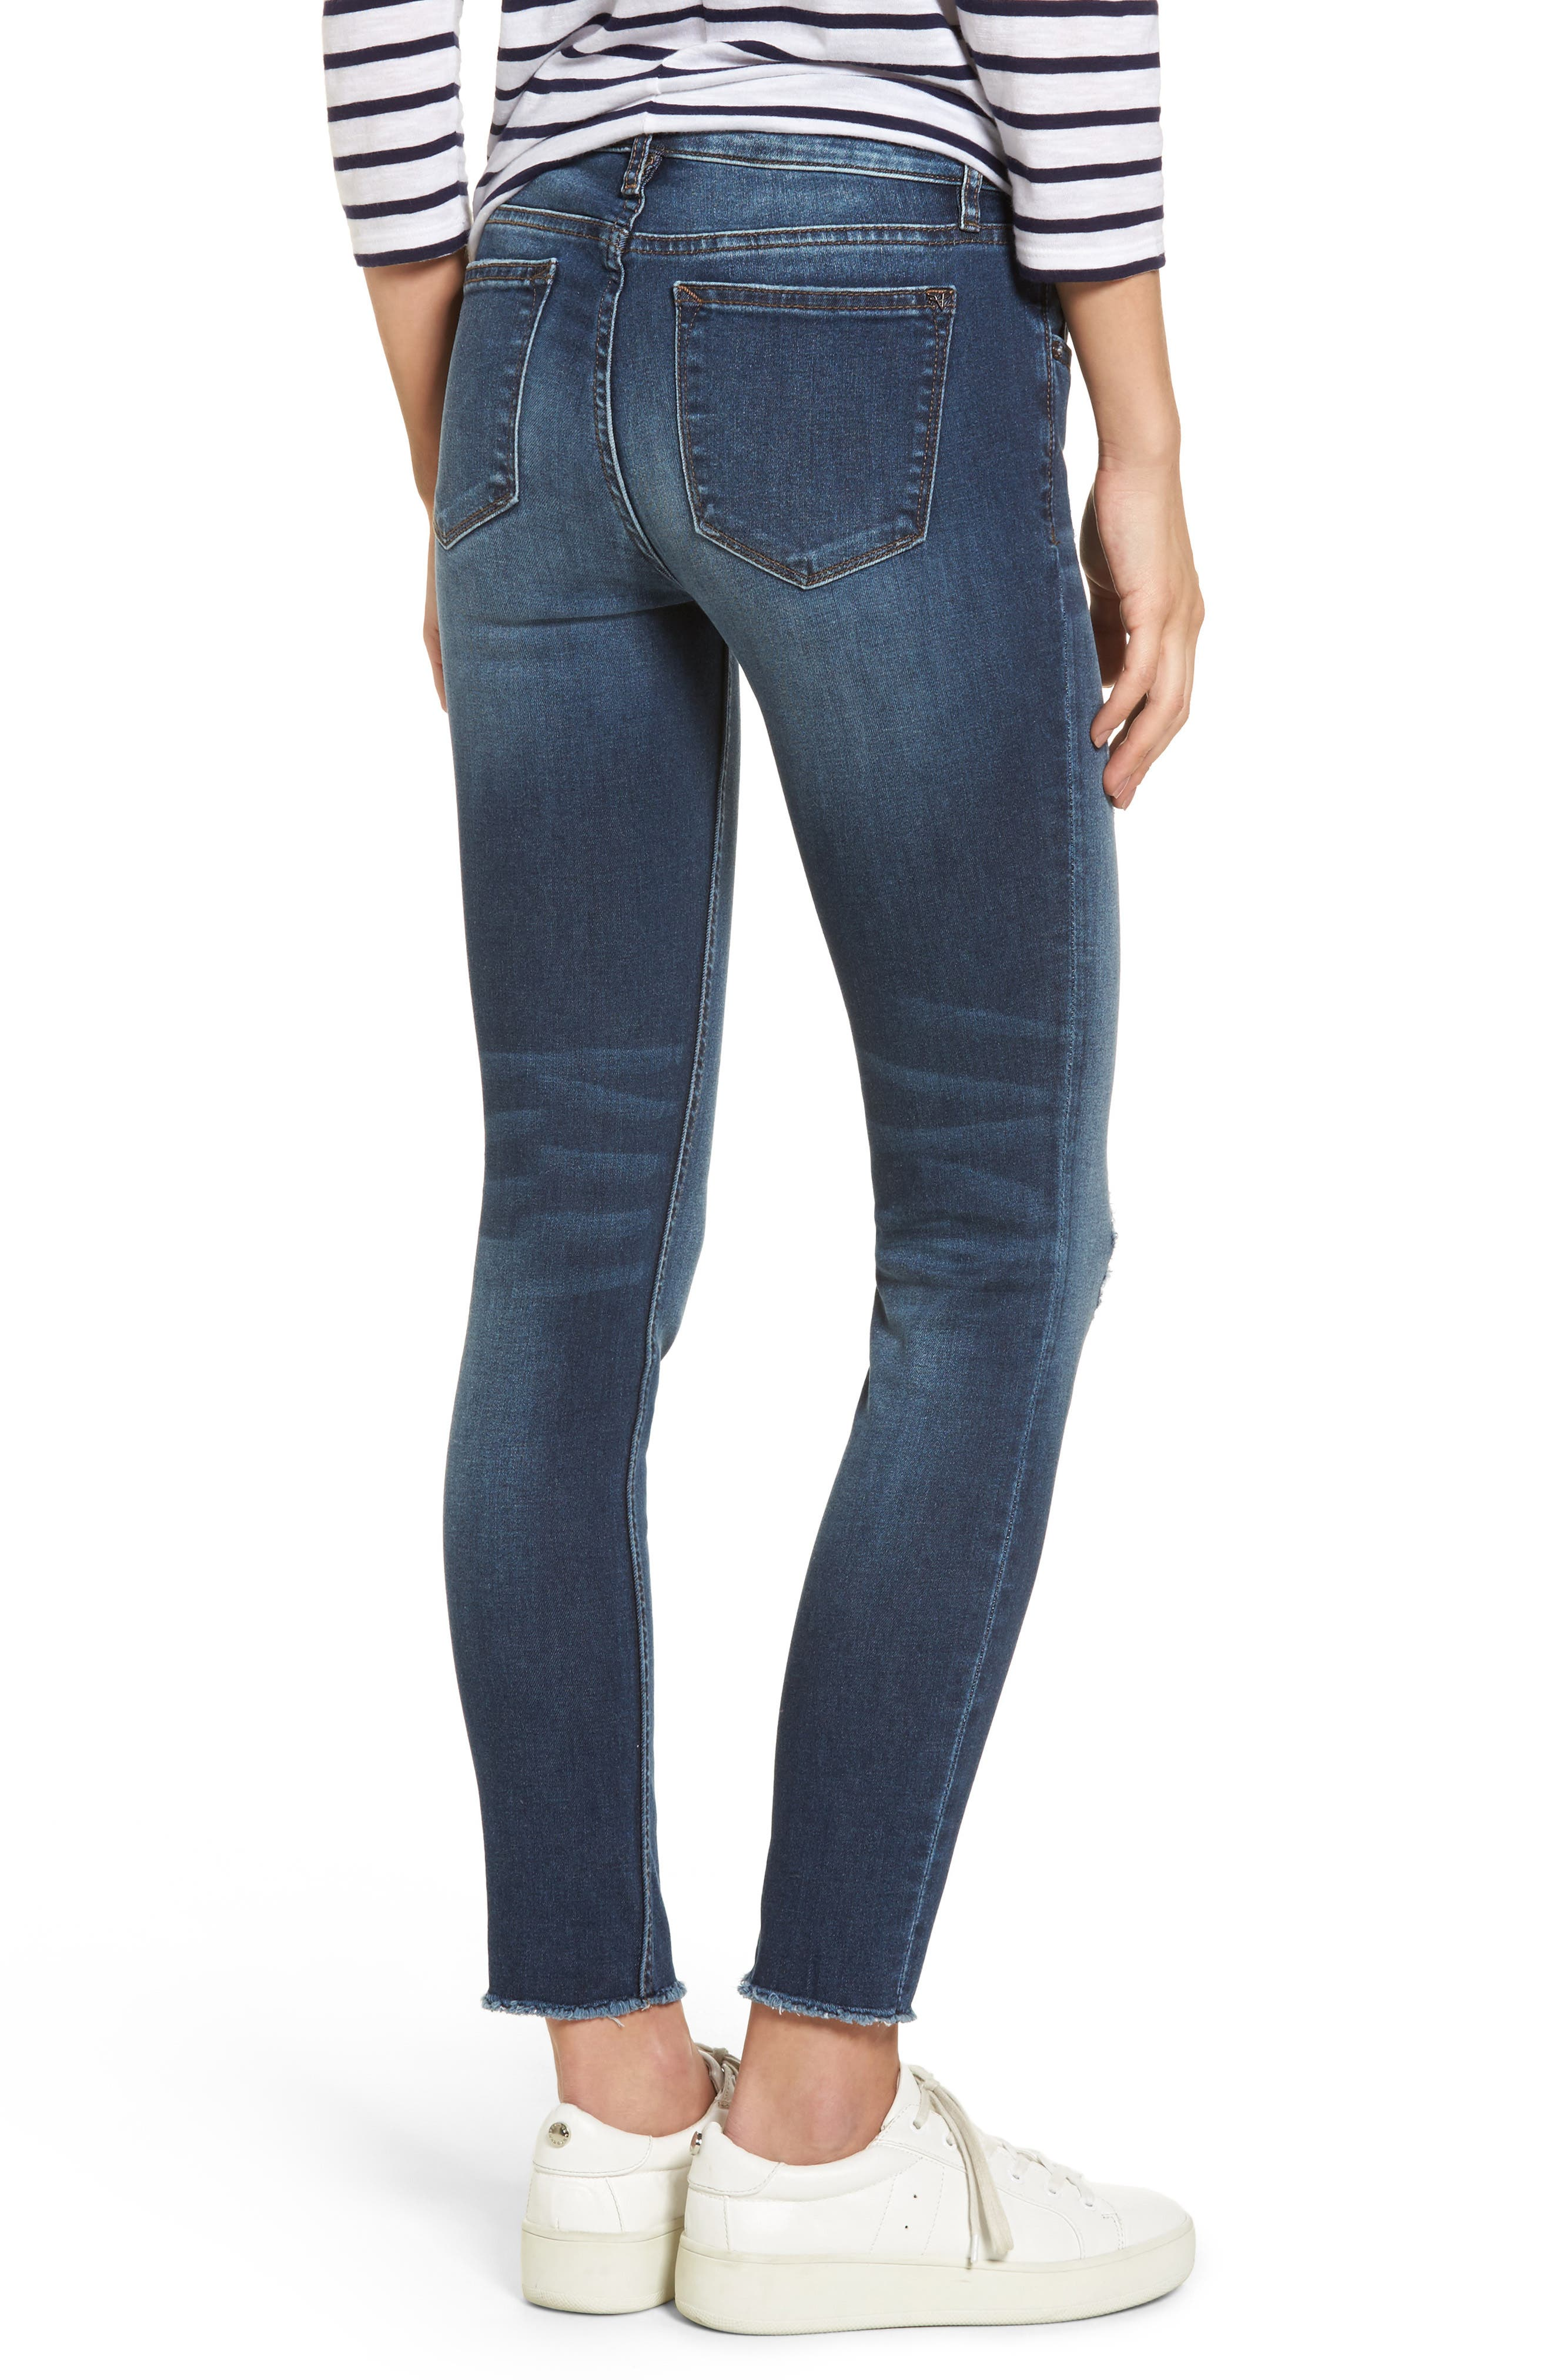 Jagger Distressed Skinny Jeans,                             Alternate thumbnail 2, color,                             403